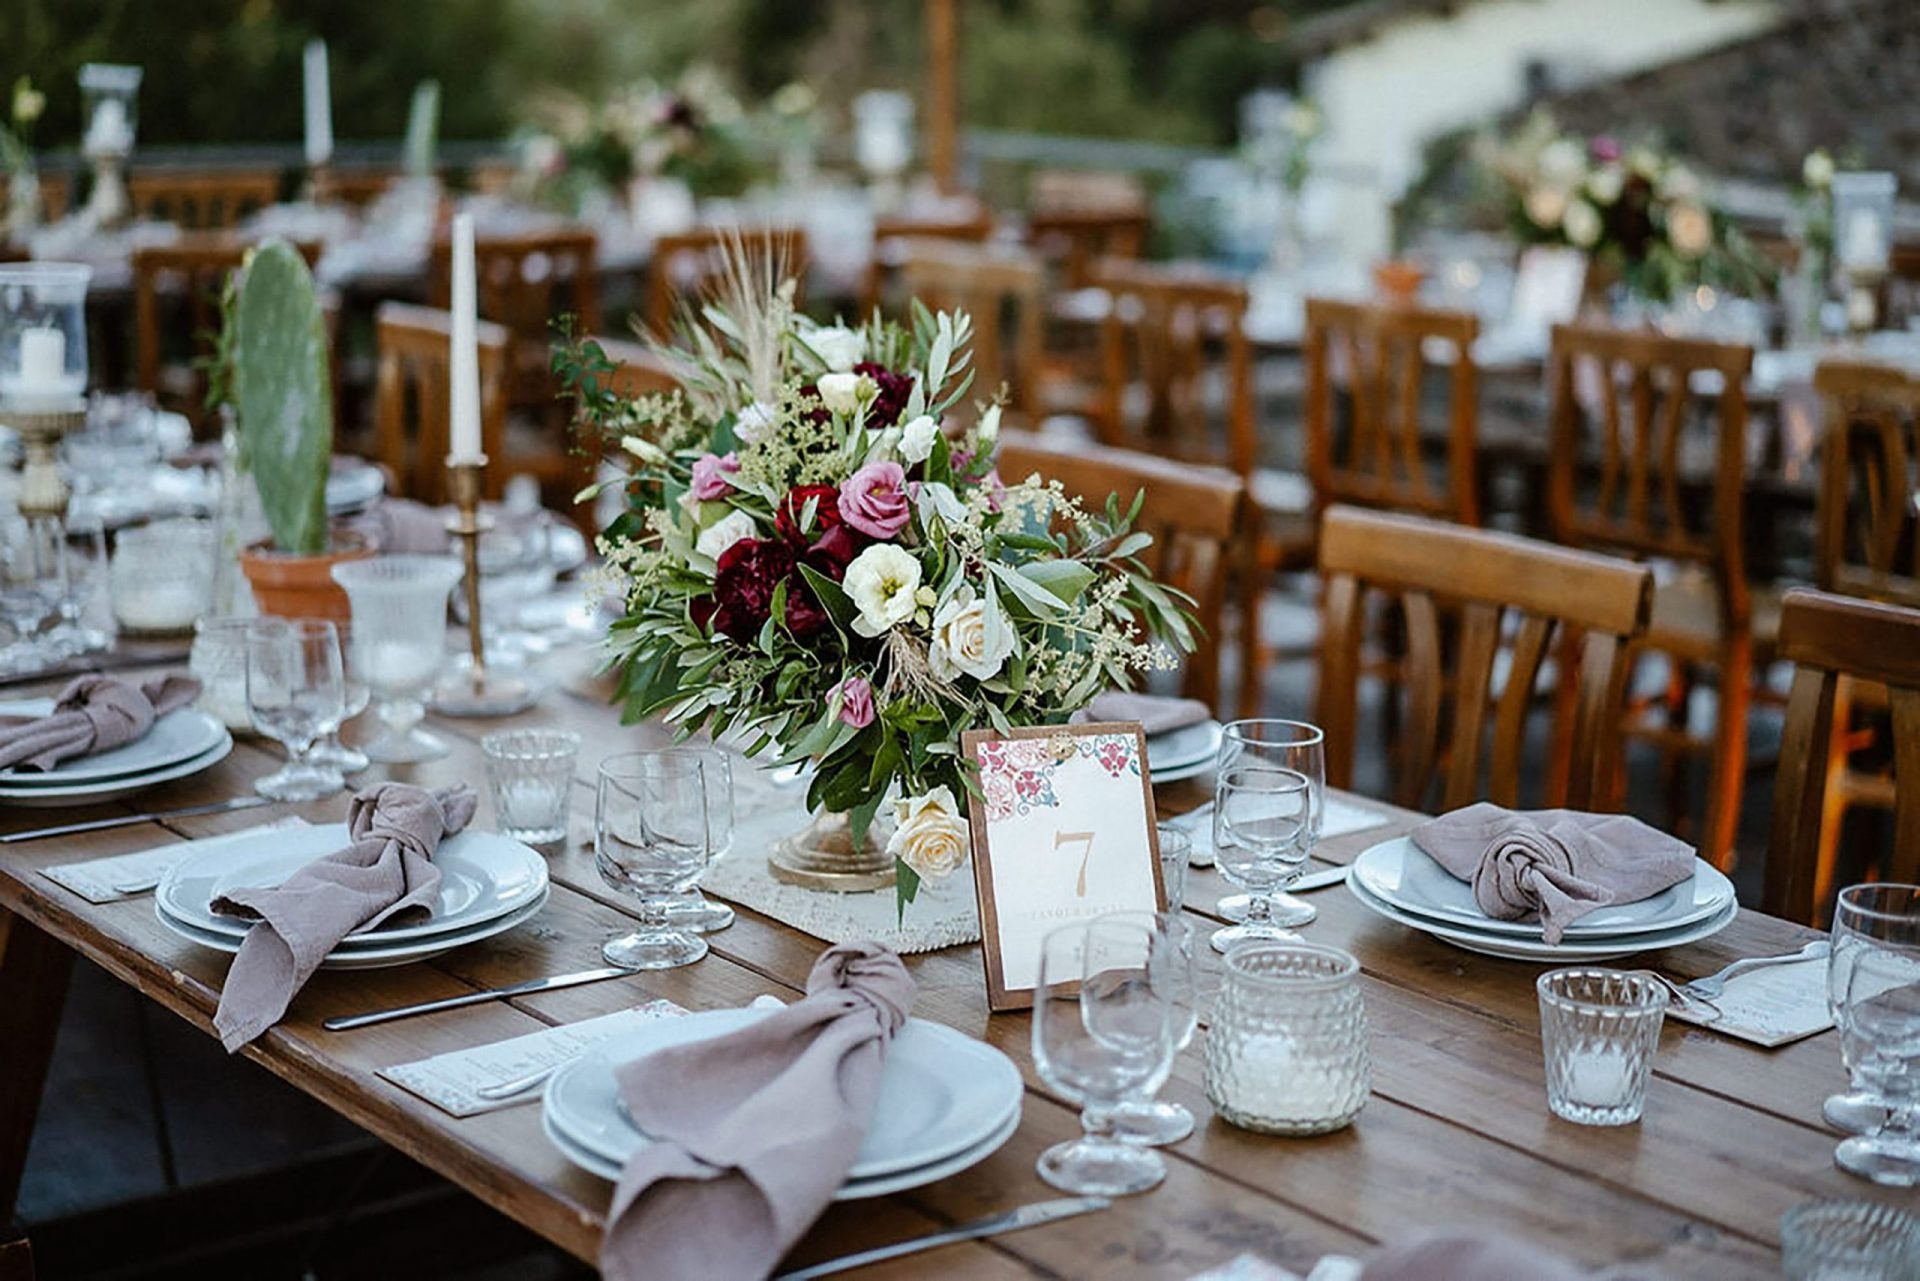 Marianna & Matteo, country inspired table decor